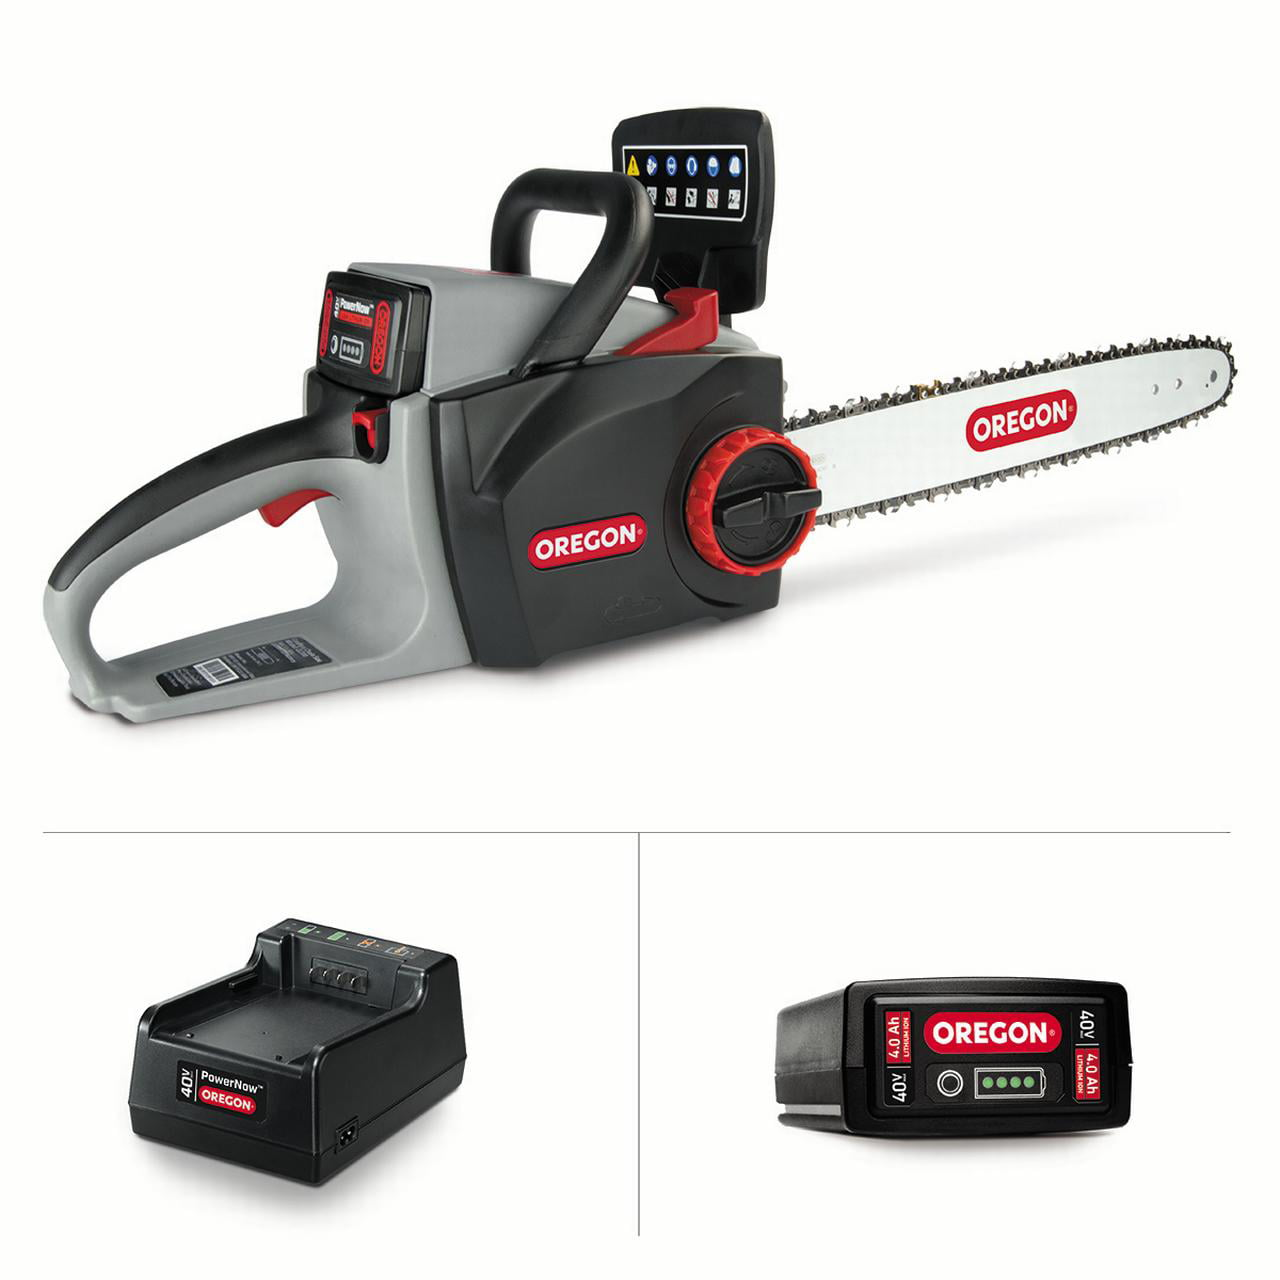 Oregon 40V Max CS300 Chain Saw Kit with 4.0 Ah Battery Pack and Standard Charger by Blount Inc